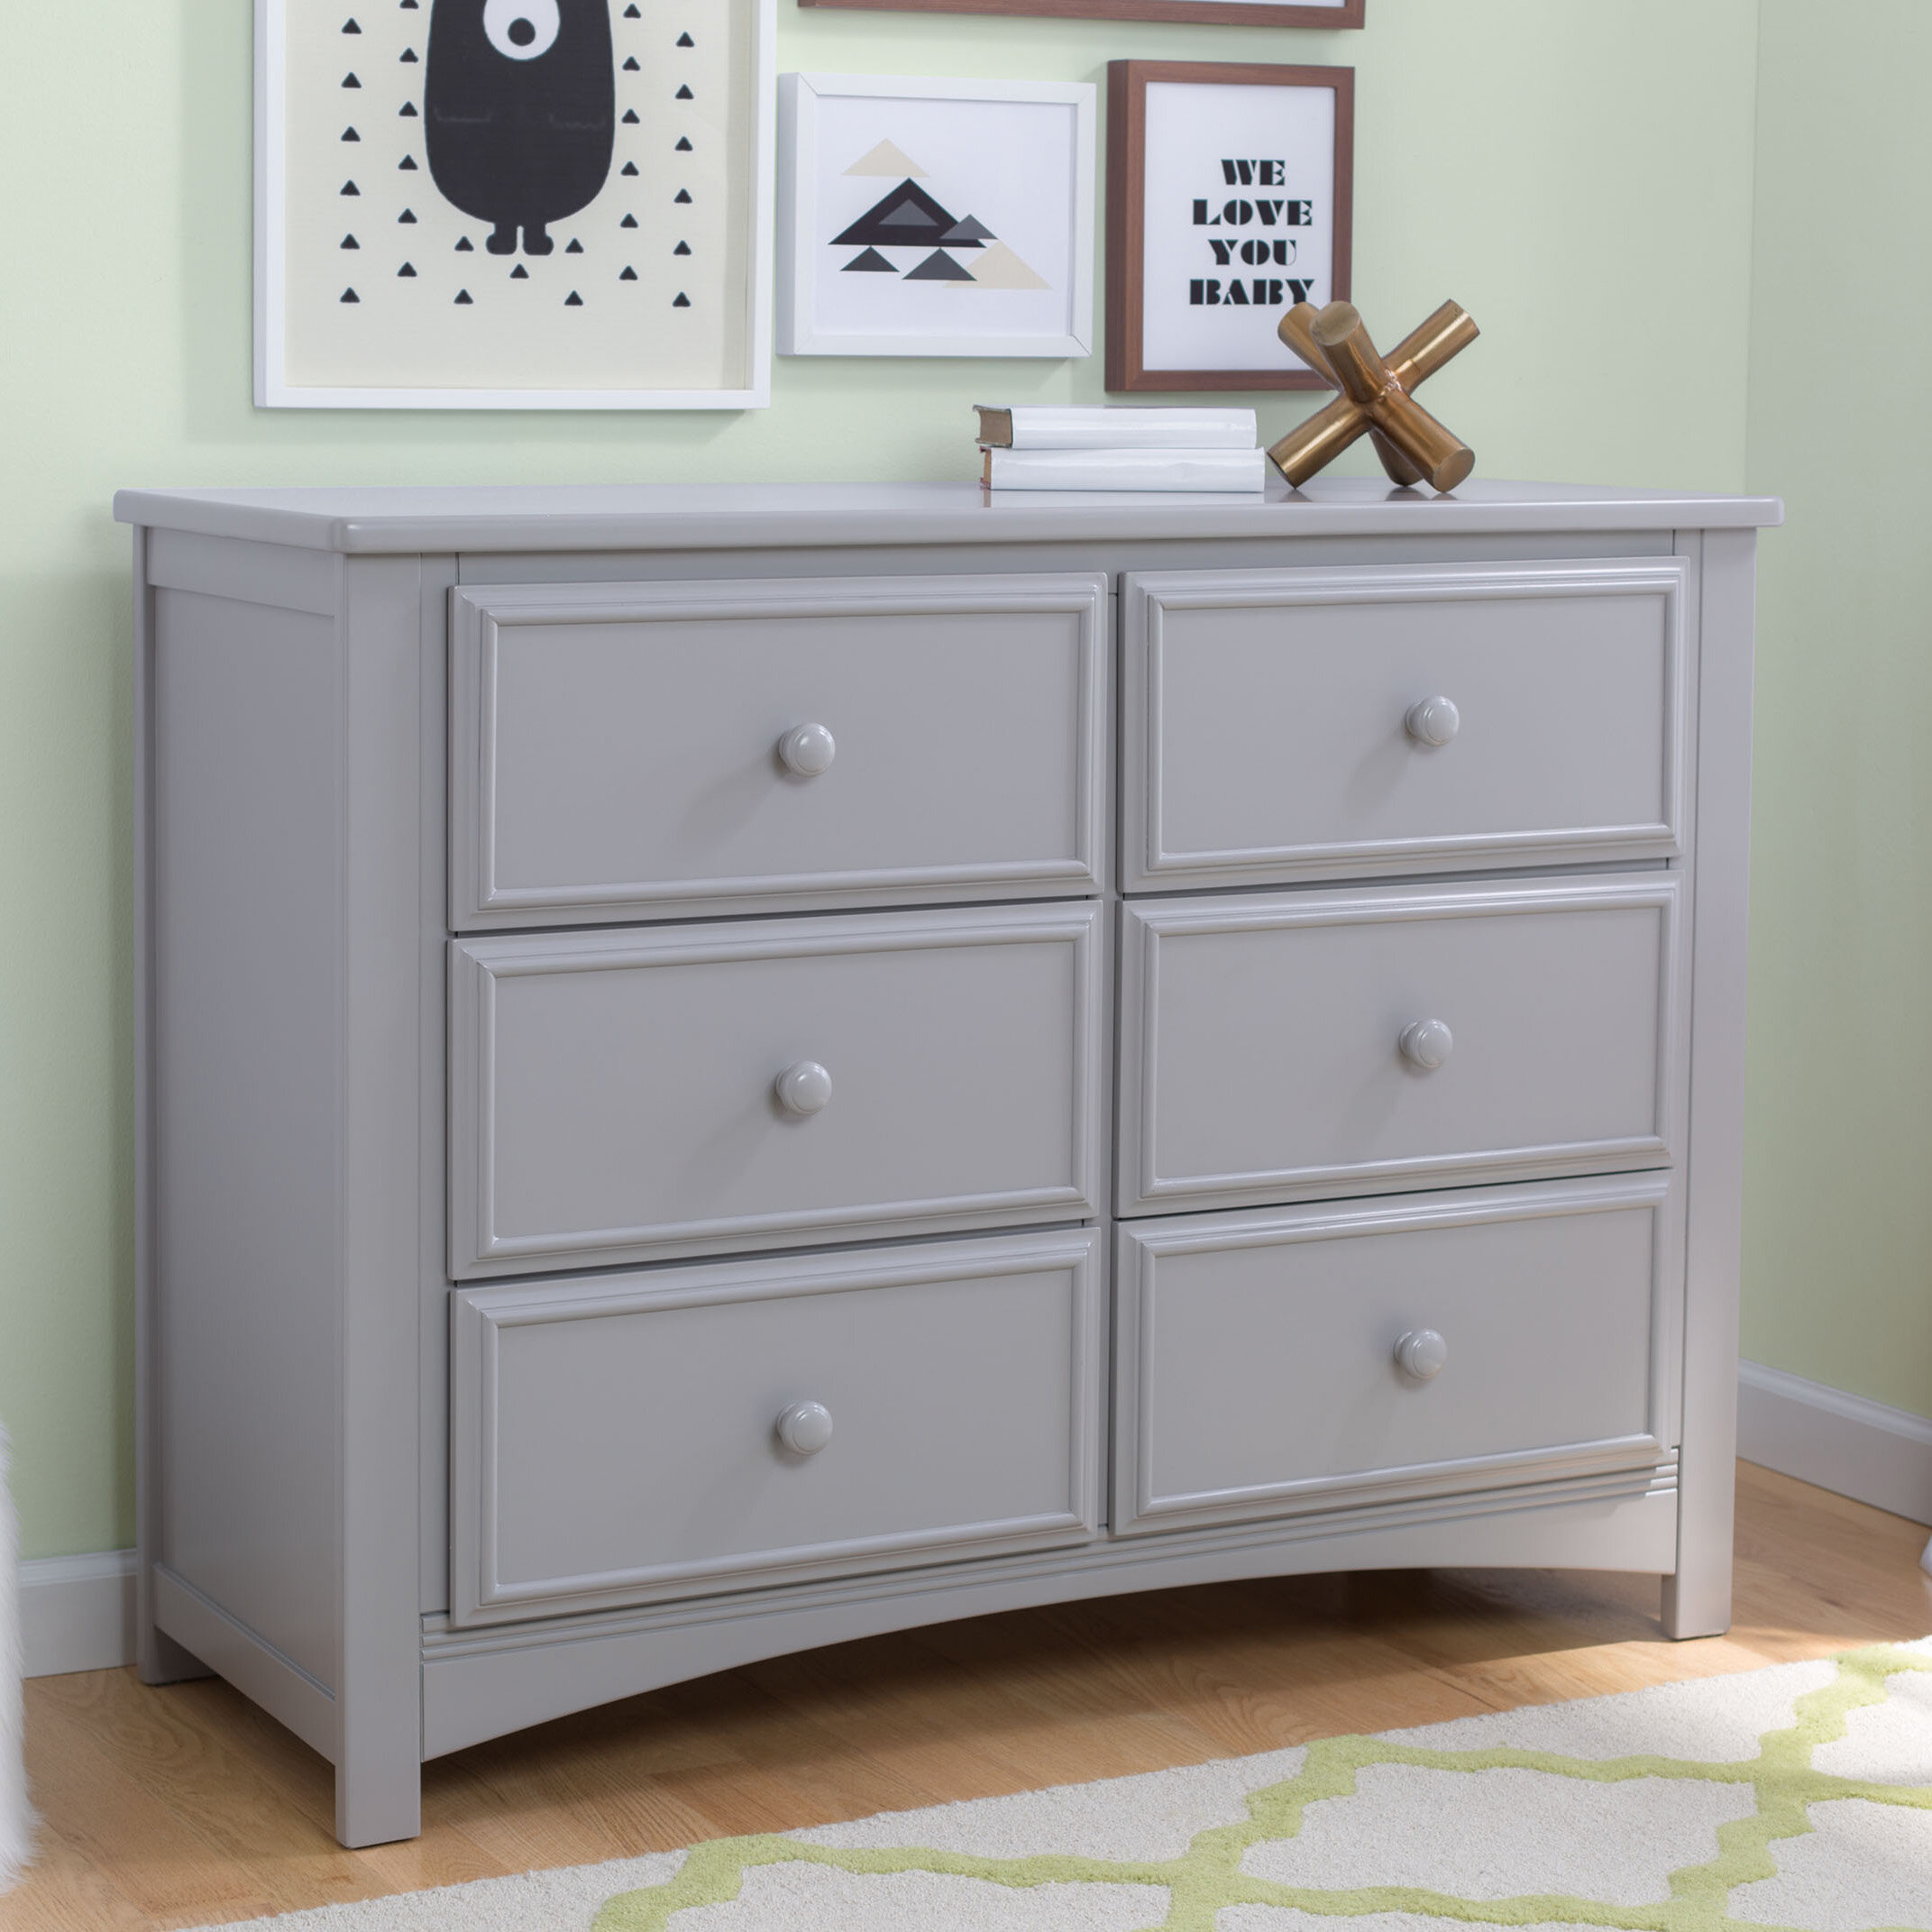 free shipping product garden kerilan today overstock grey gray america dresser home transitional piece furniture set mirror of drawer and